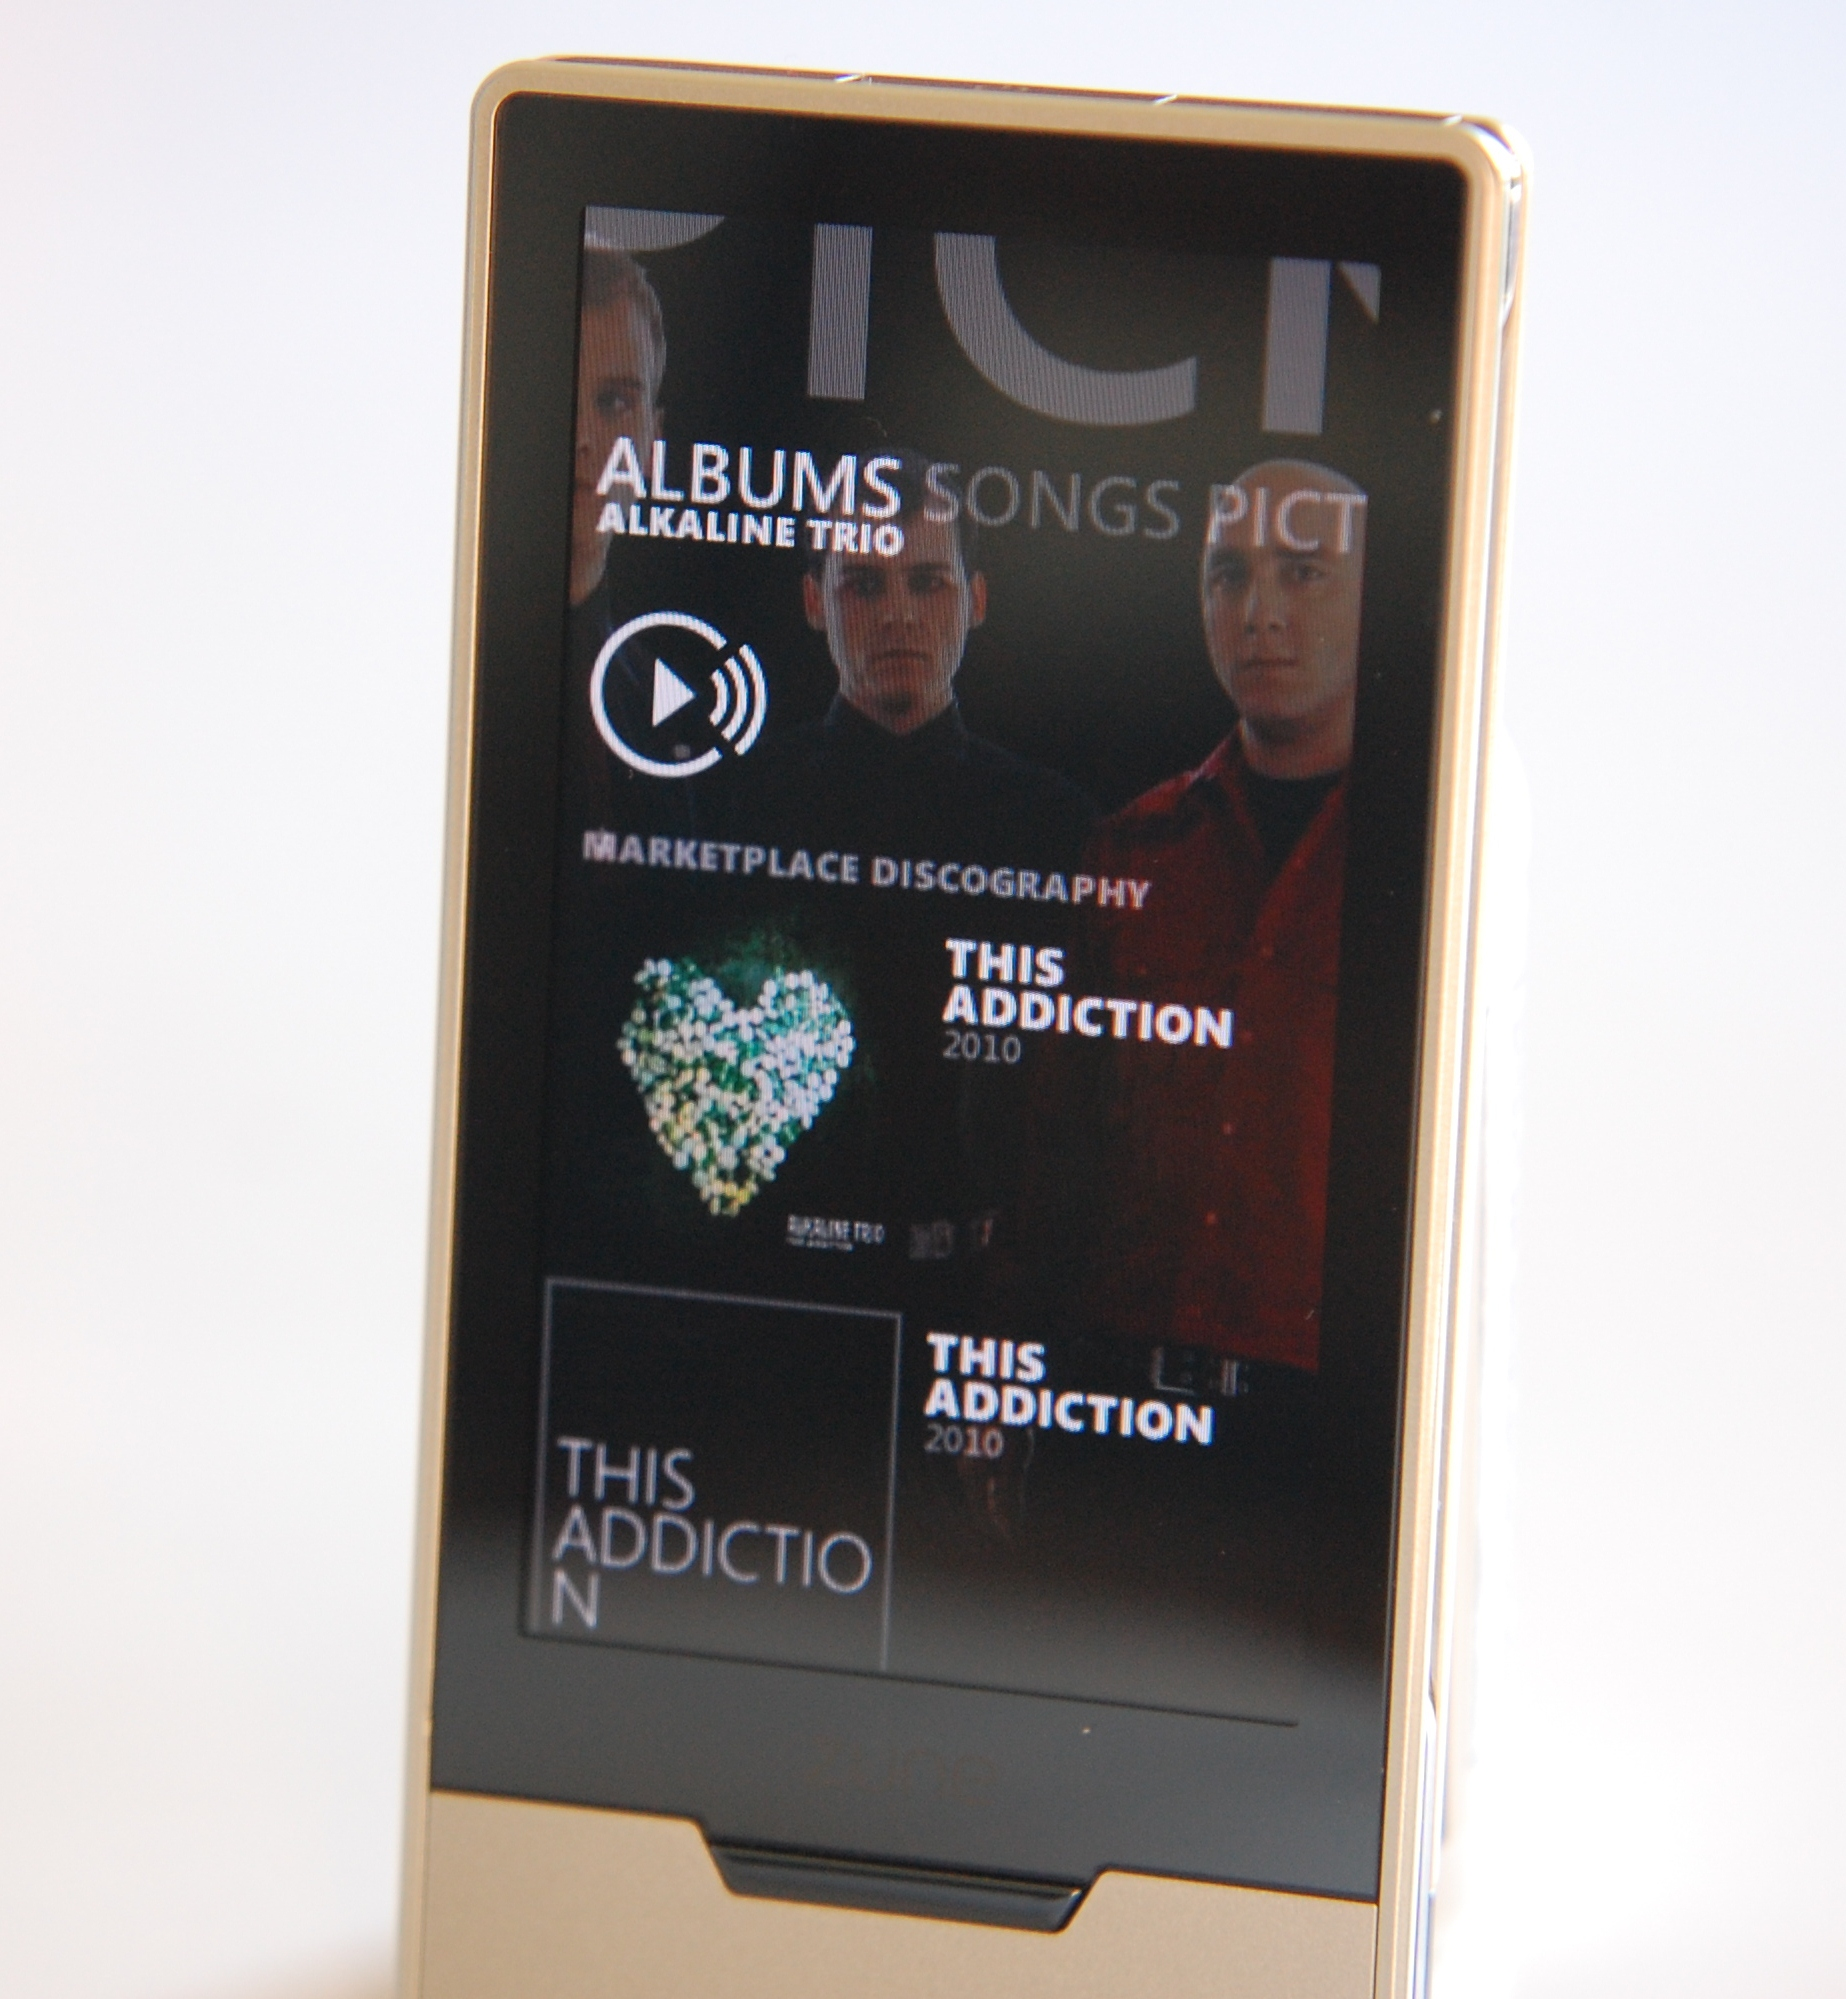 The Best mp3 Player {Zune HD Review/Giveaway} - Family Tech Zone